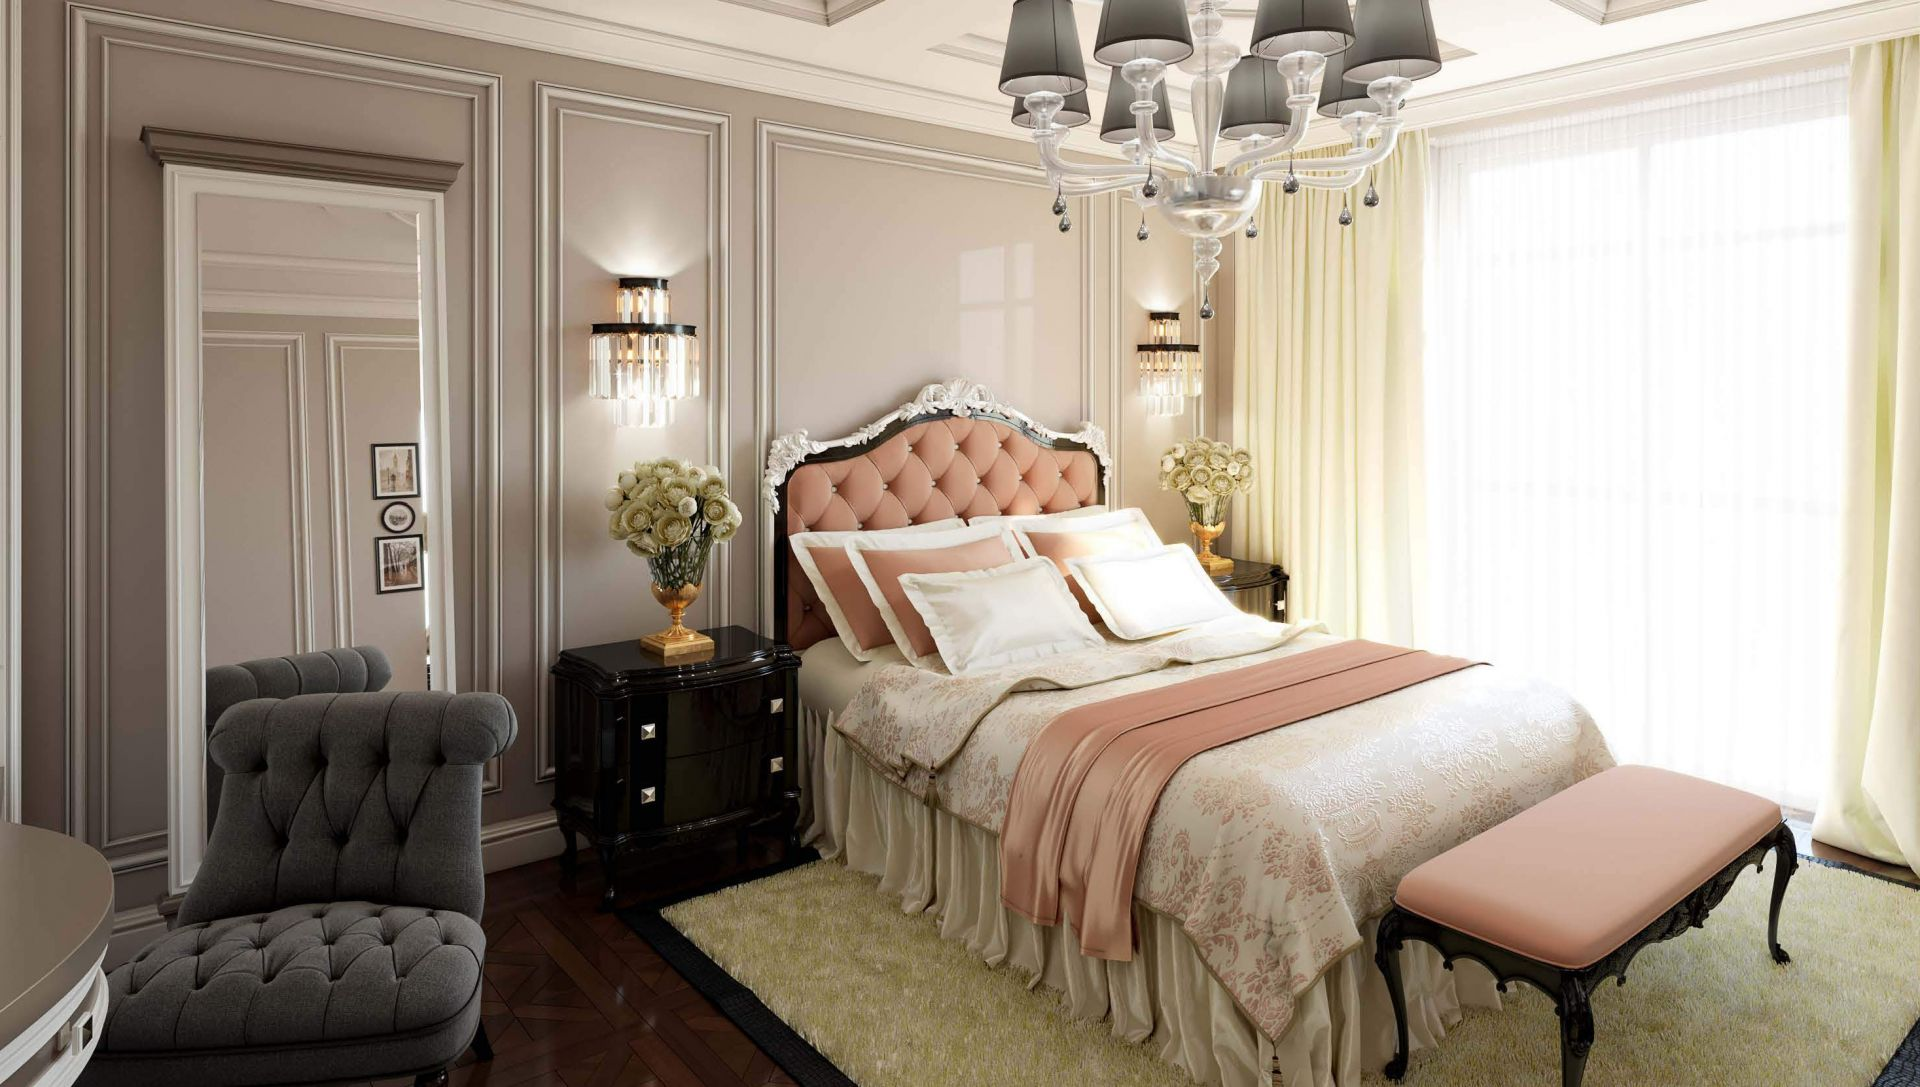 Neoclassical style bedroom design